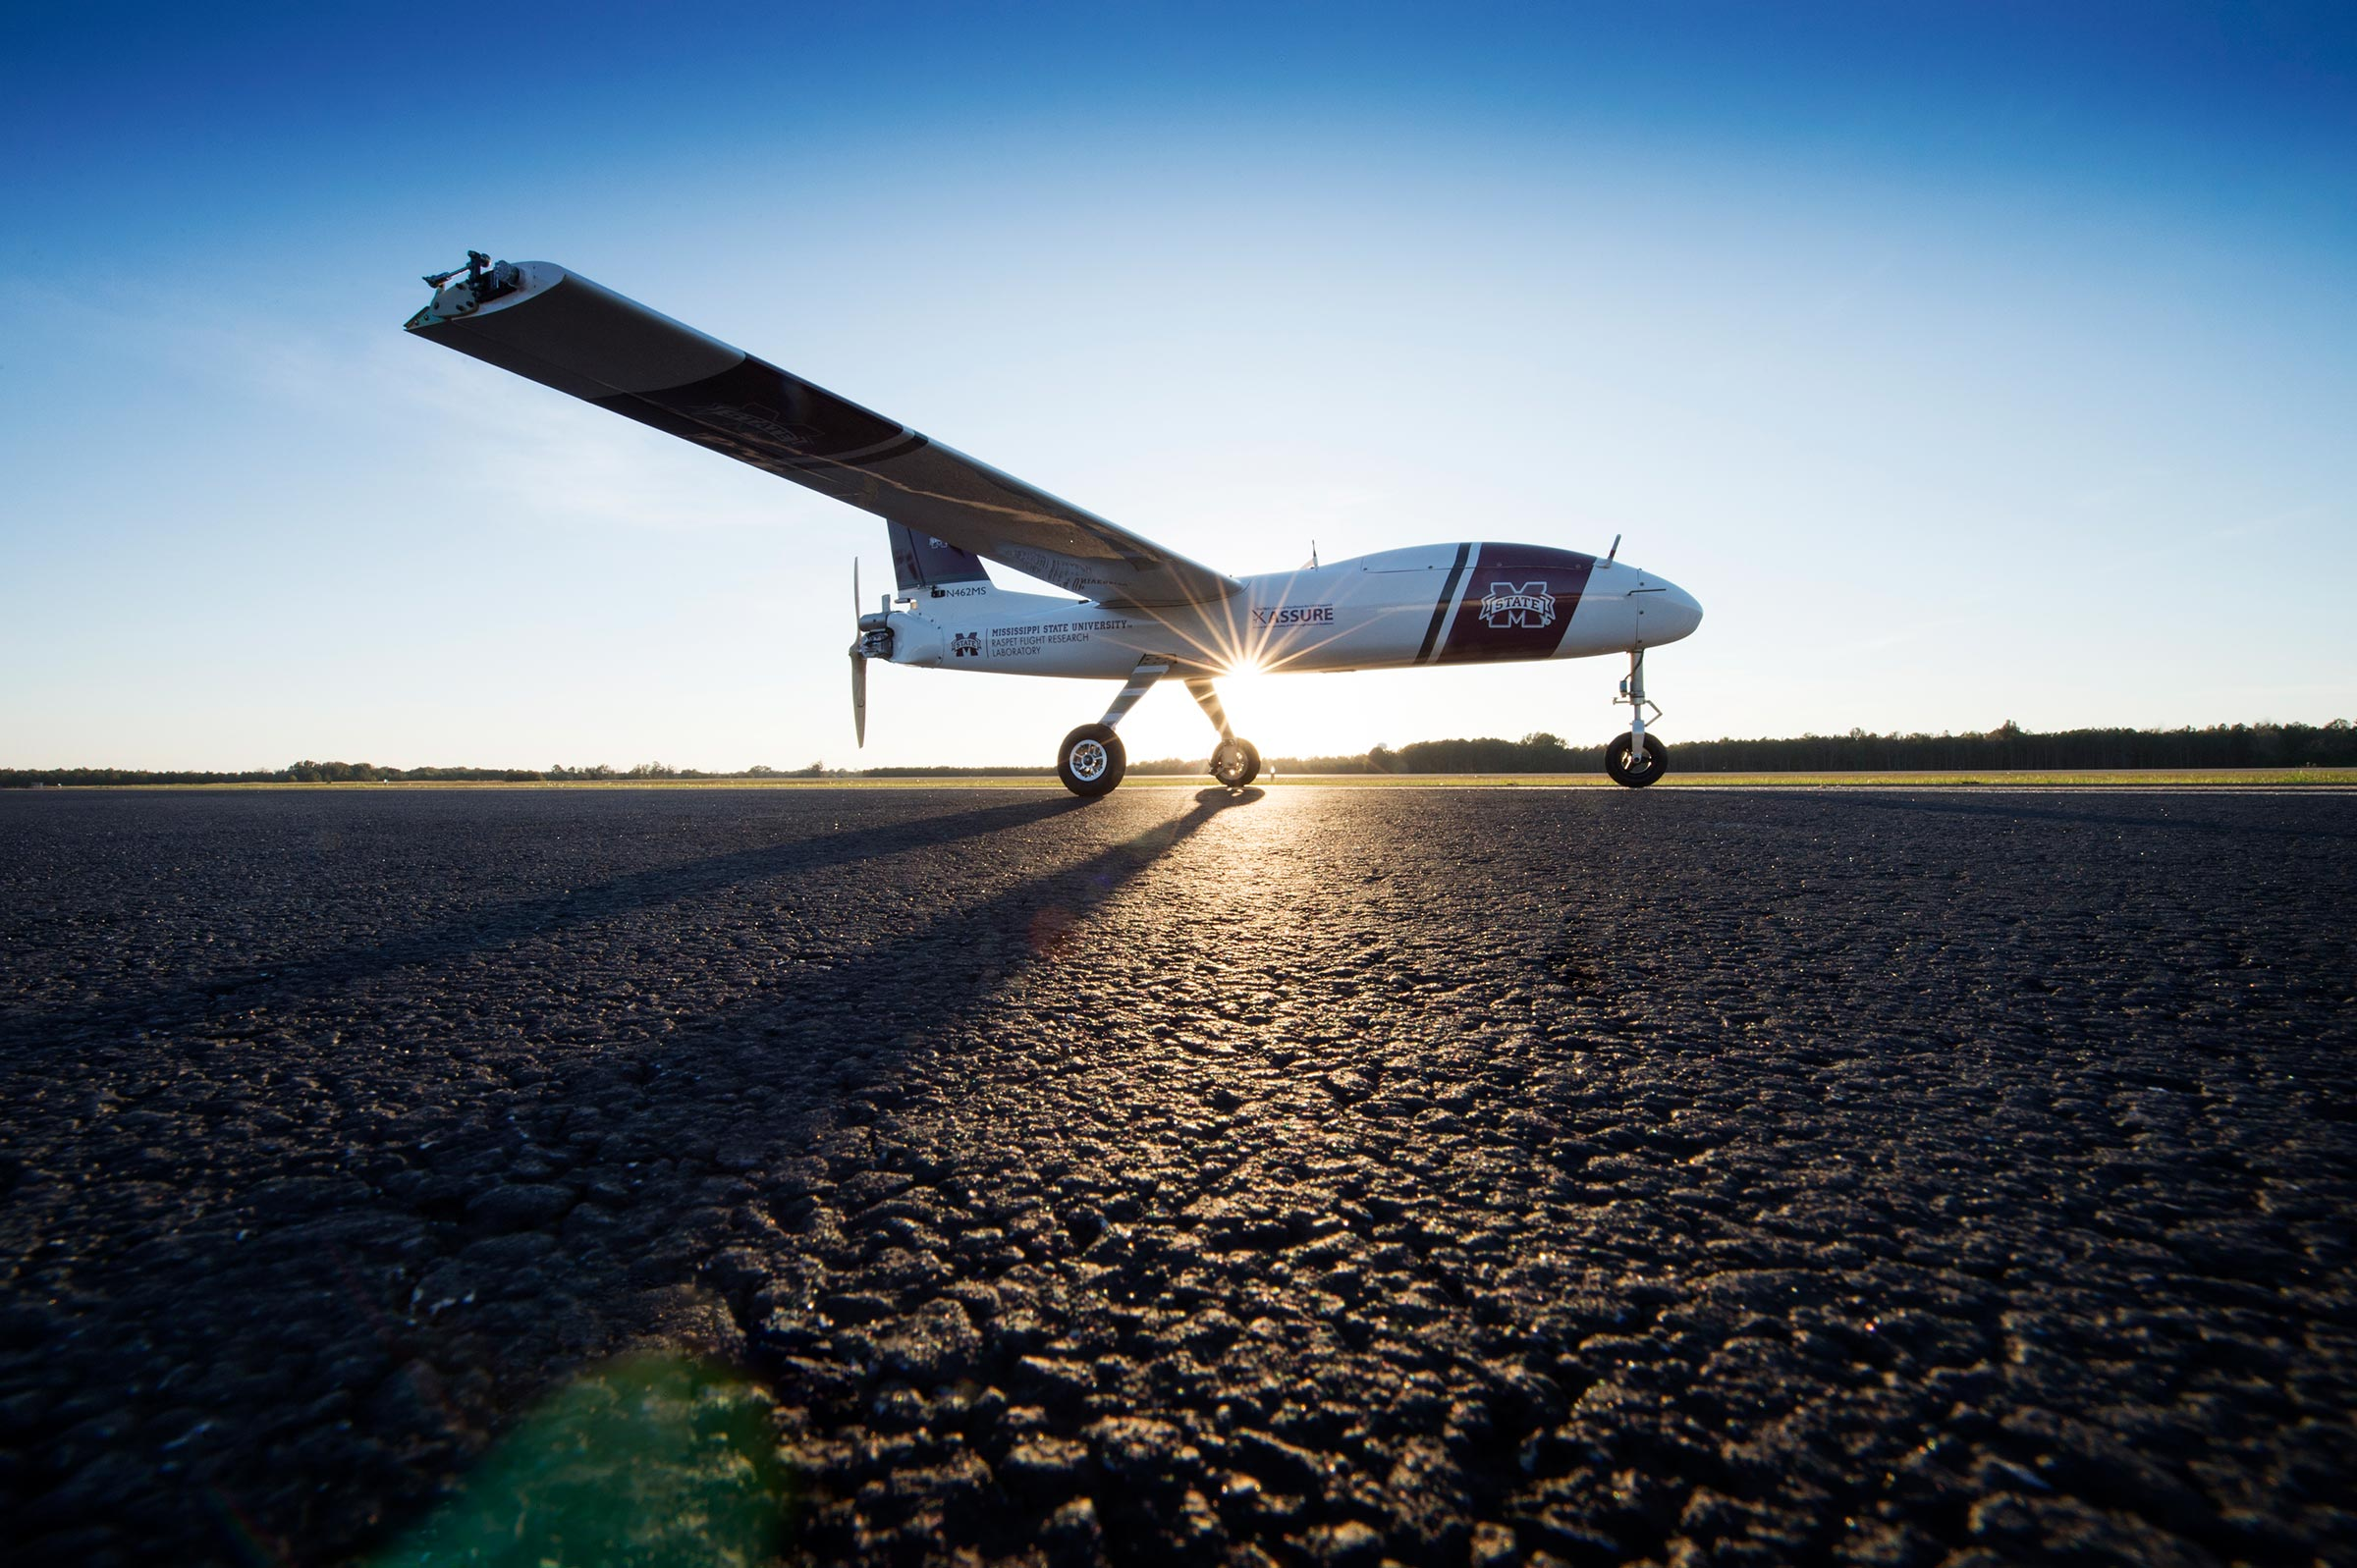 Unmanned plane with sun in background